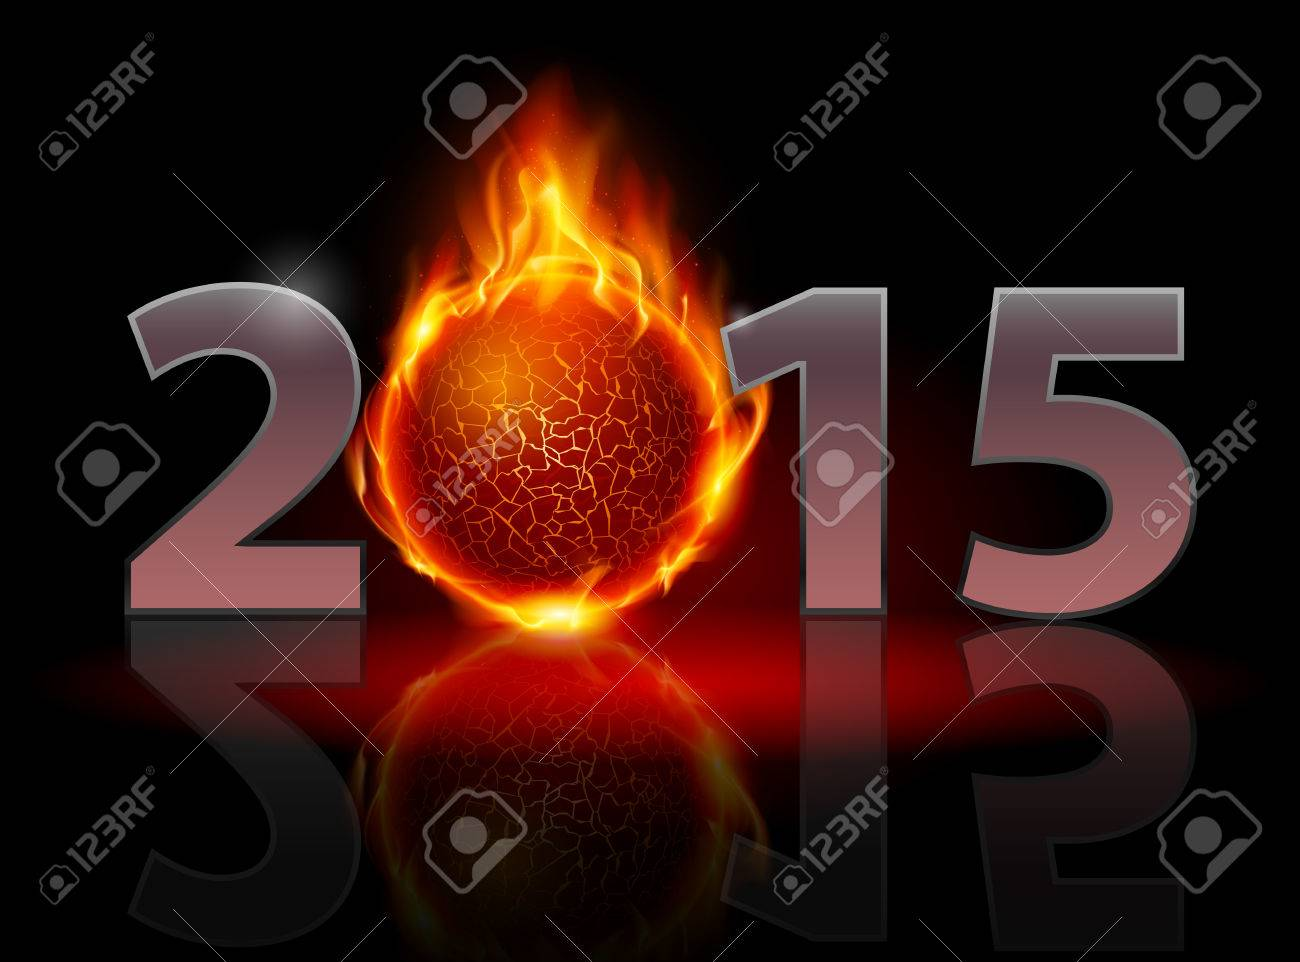 New Year 2015: metal numerals with fire ball instead of zero having weak reflection. Illustration on black background Stock Vector - 32267569